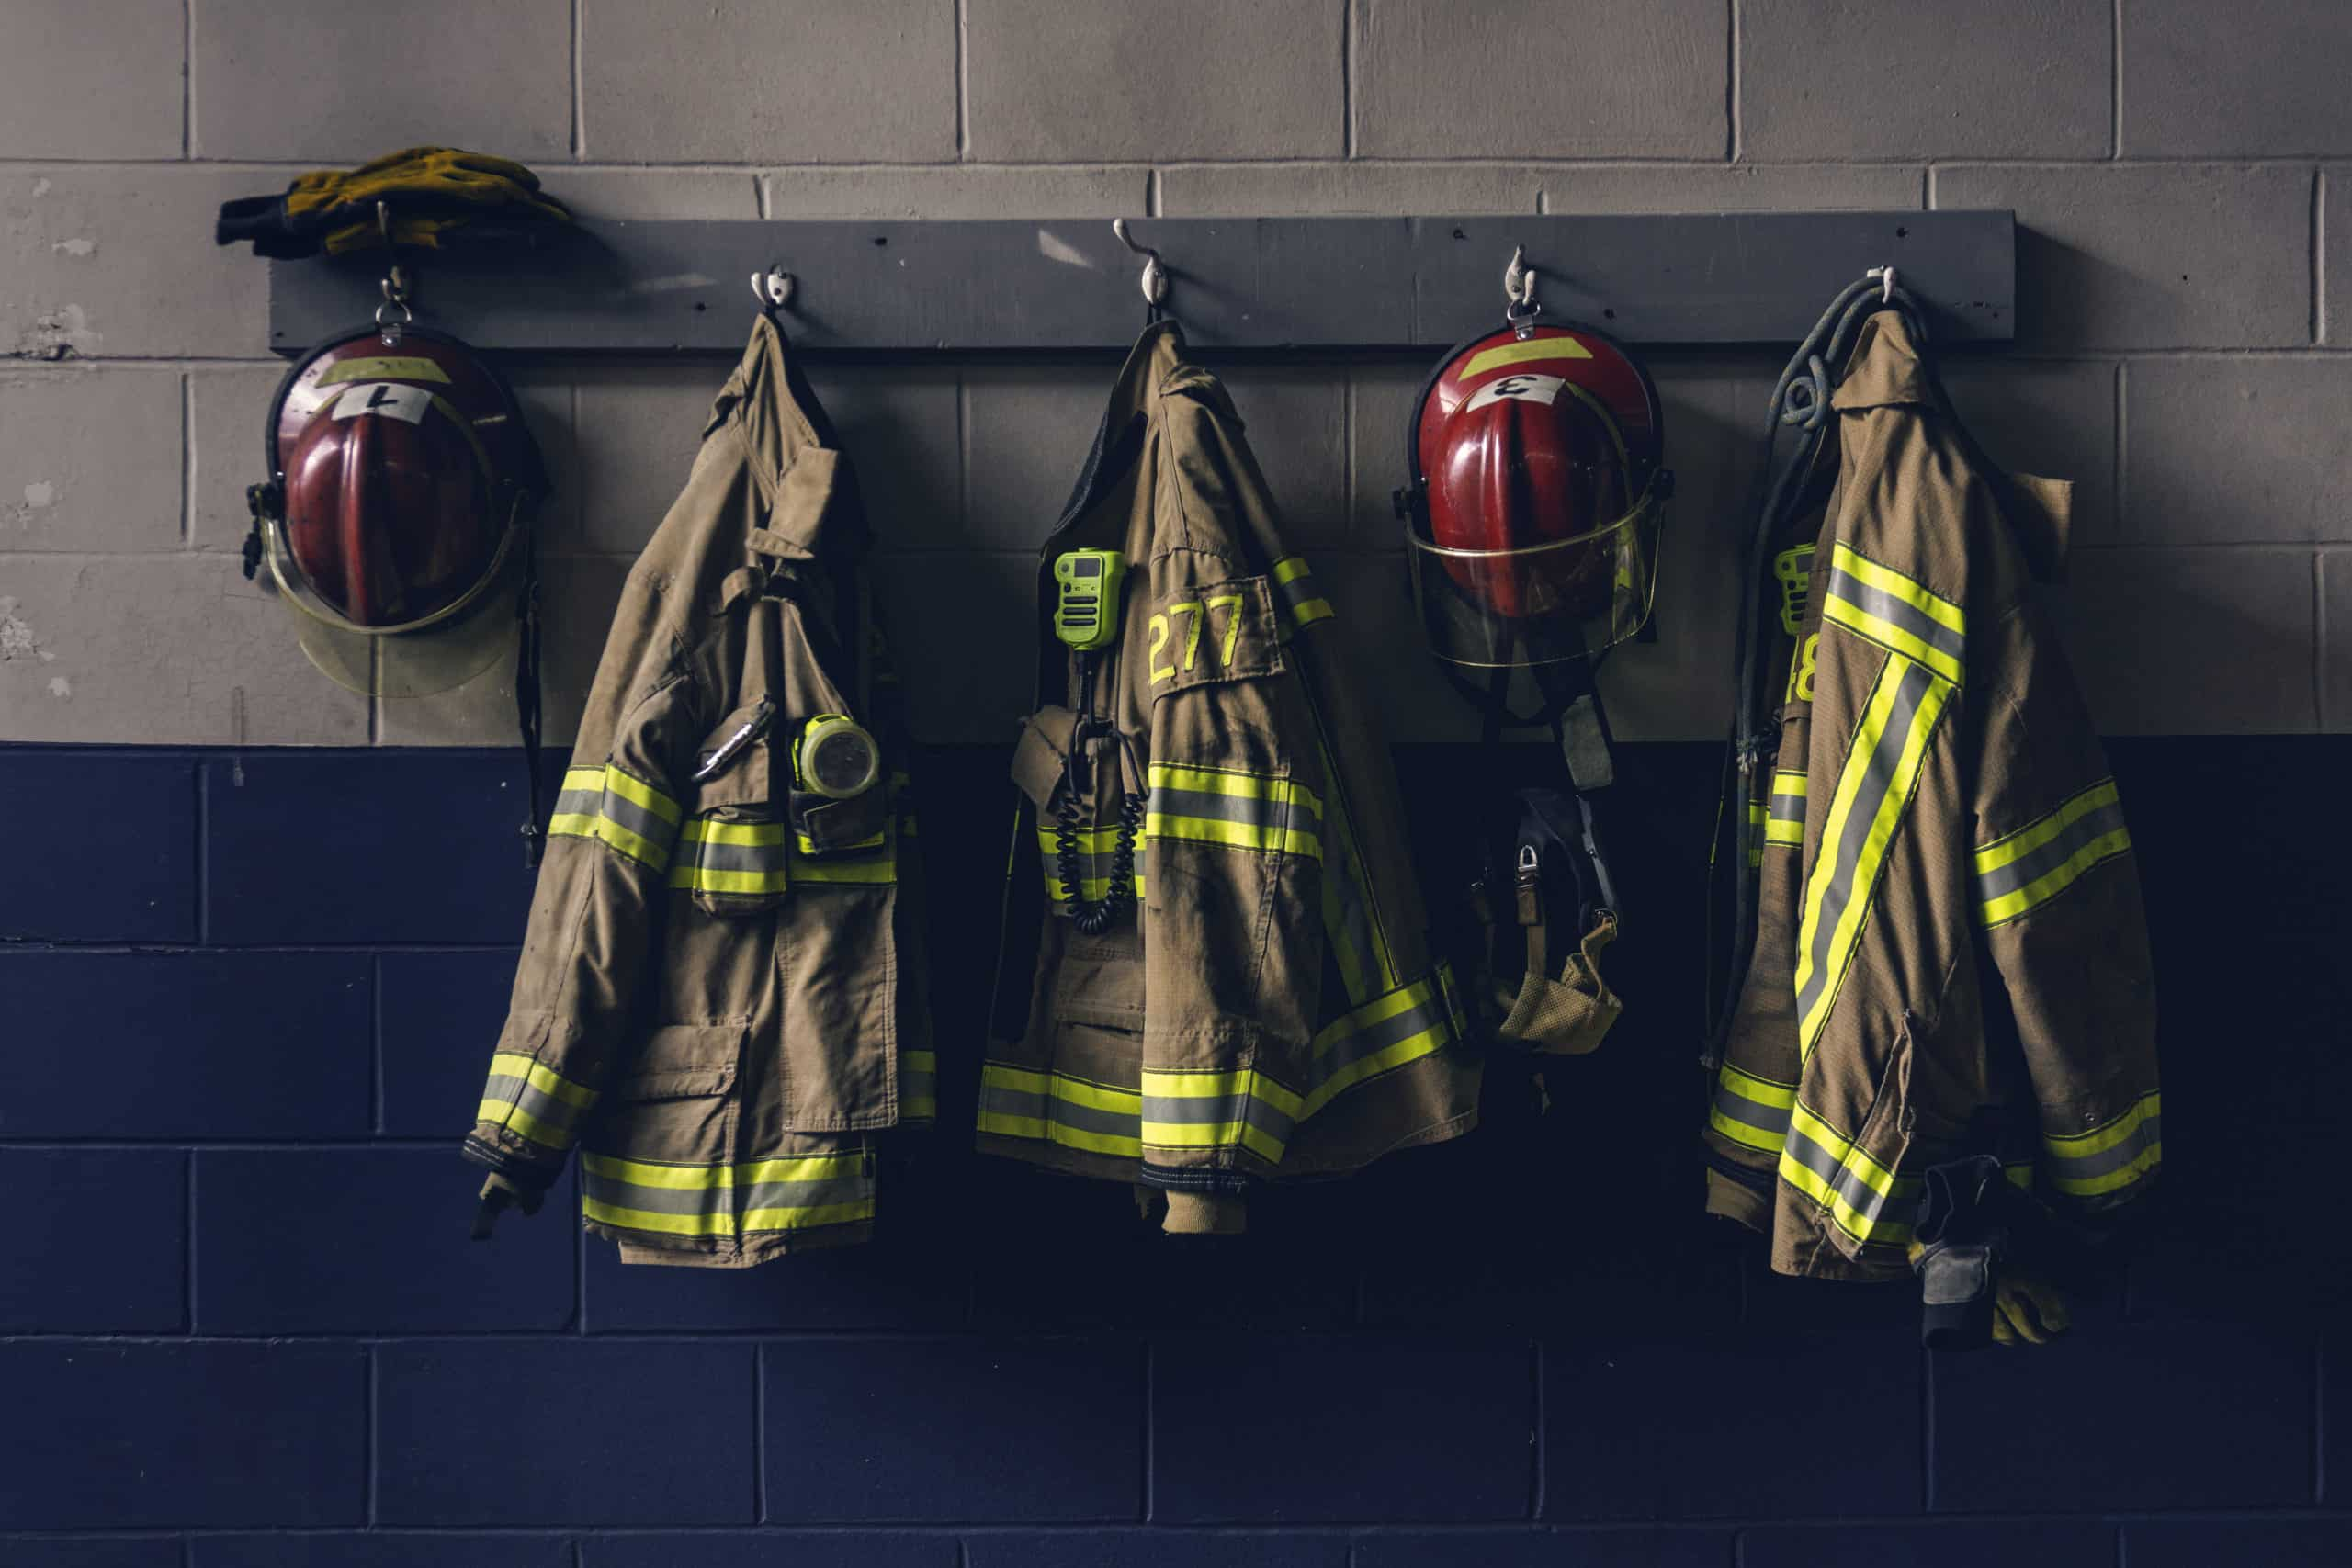 Safer, Smarter, Better: A Day In The Life Of A Firefighter